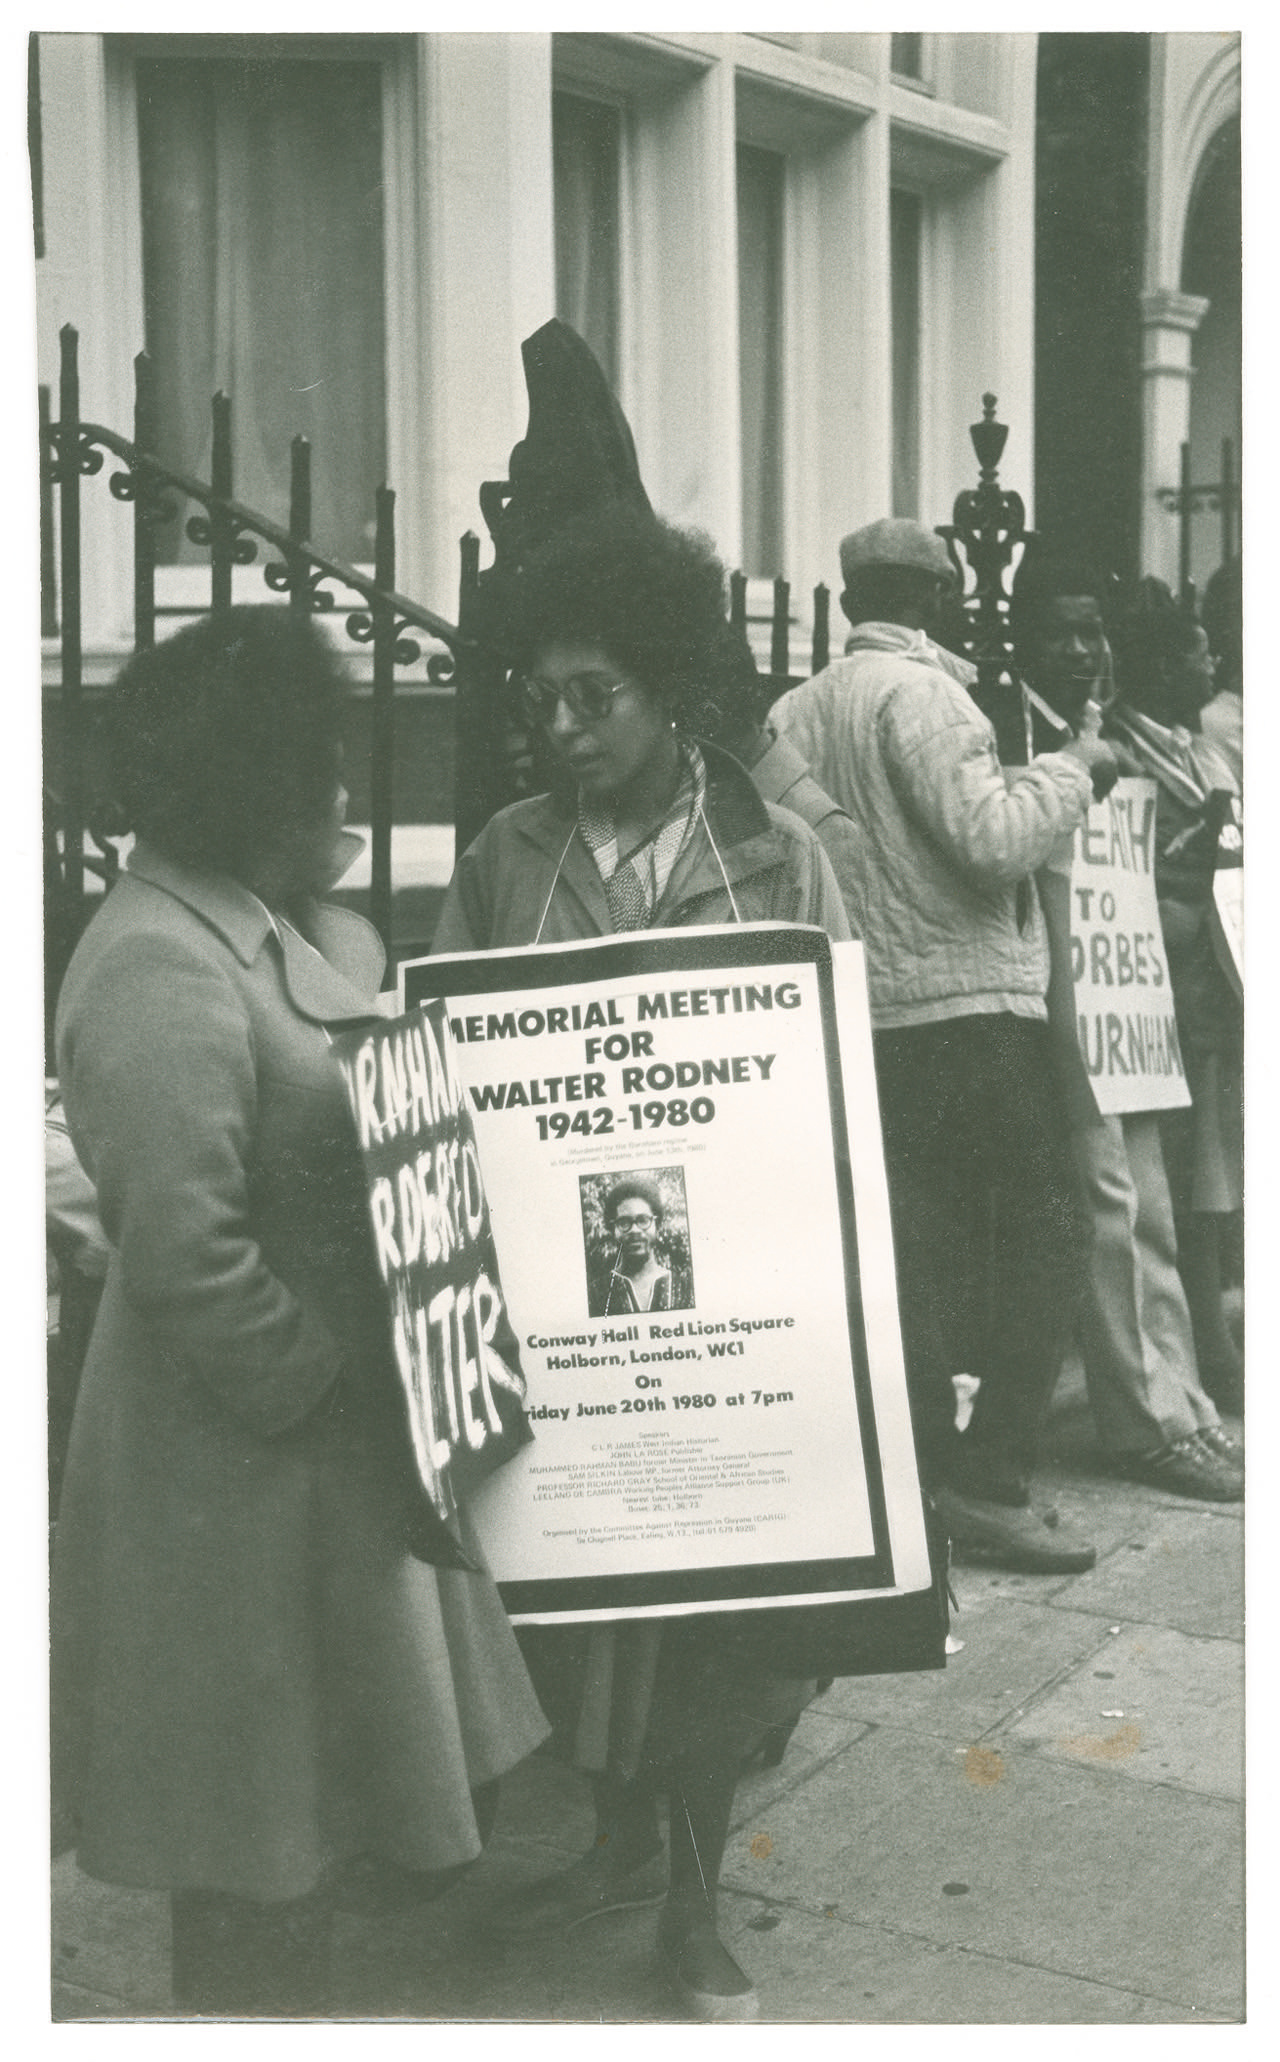 _16 Demonstration for Walter Rodney's murder, London c1980s. Huntley Archives at London Metropolitan